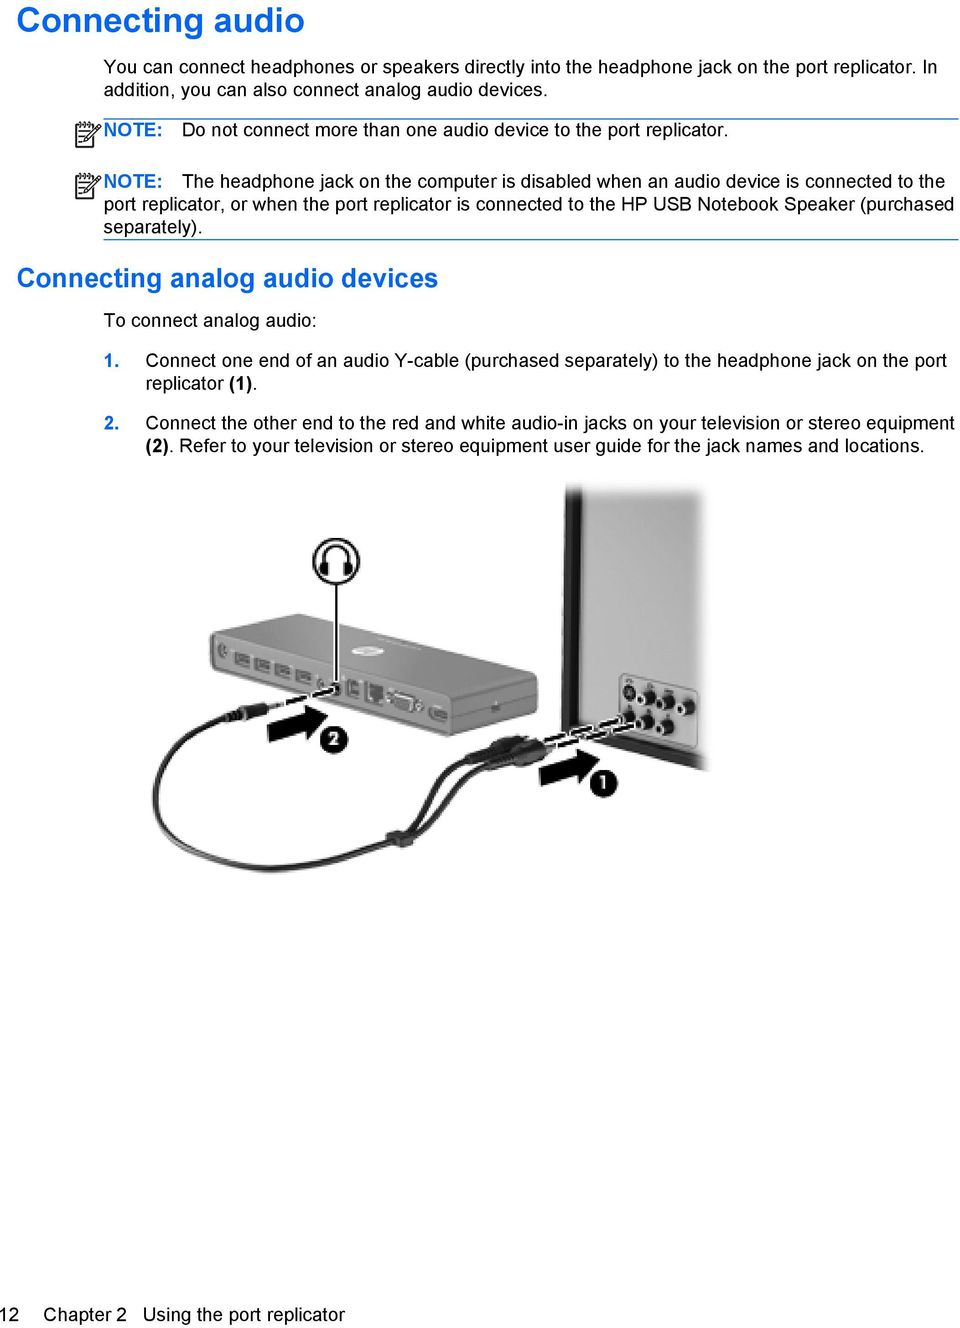 NOTE: The headphone jack on the computer is disabled when an audio device is connected to the port replicator, or when the port replicator is connected to the HP USB Notebook Speaker (purchased